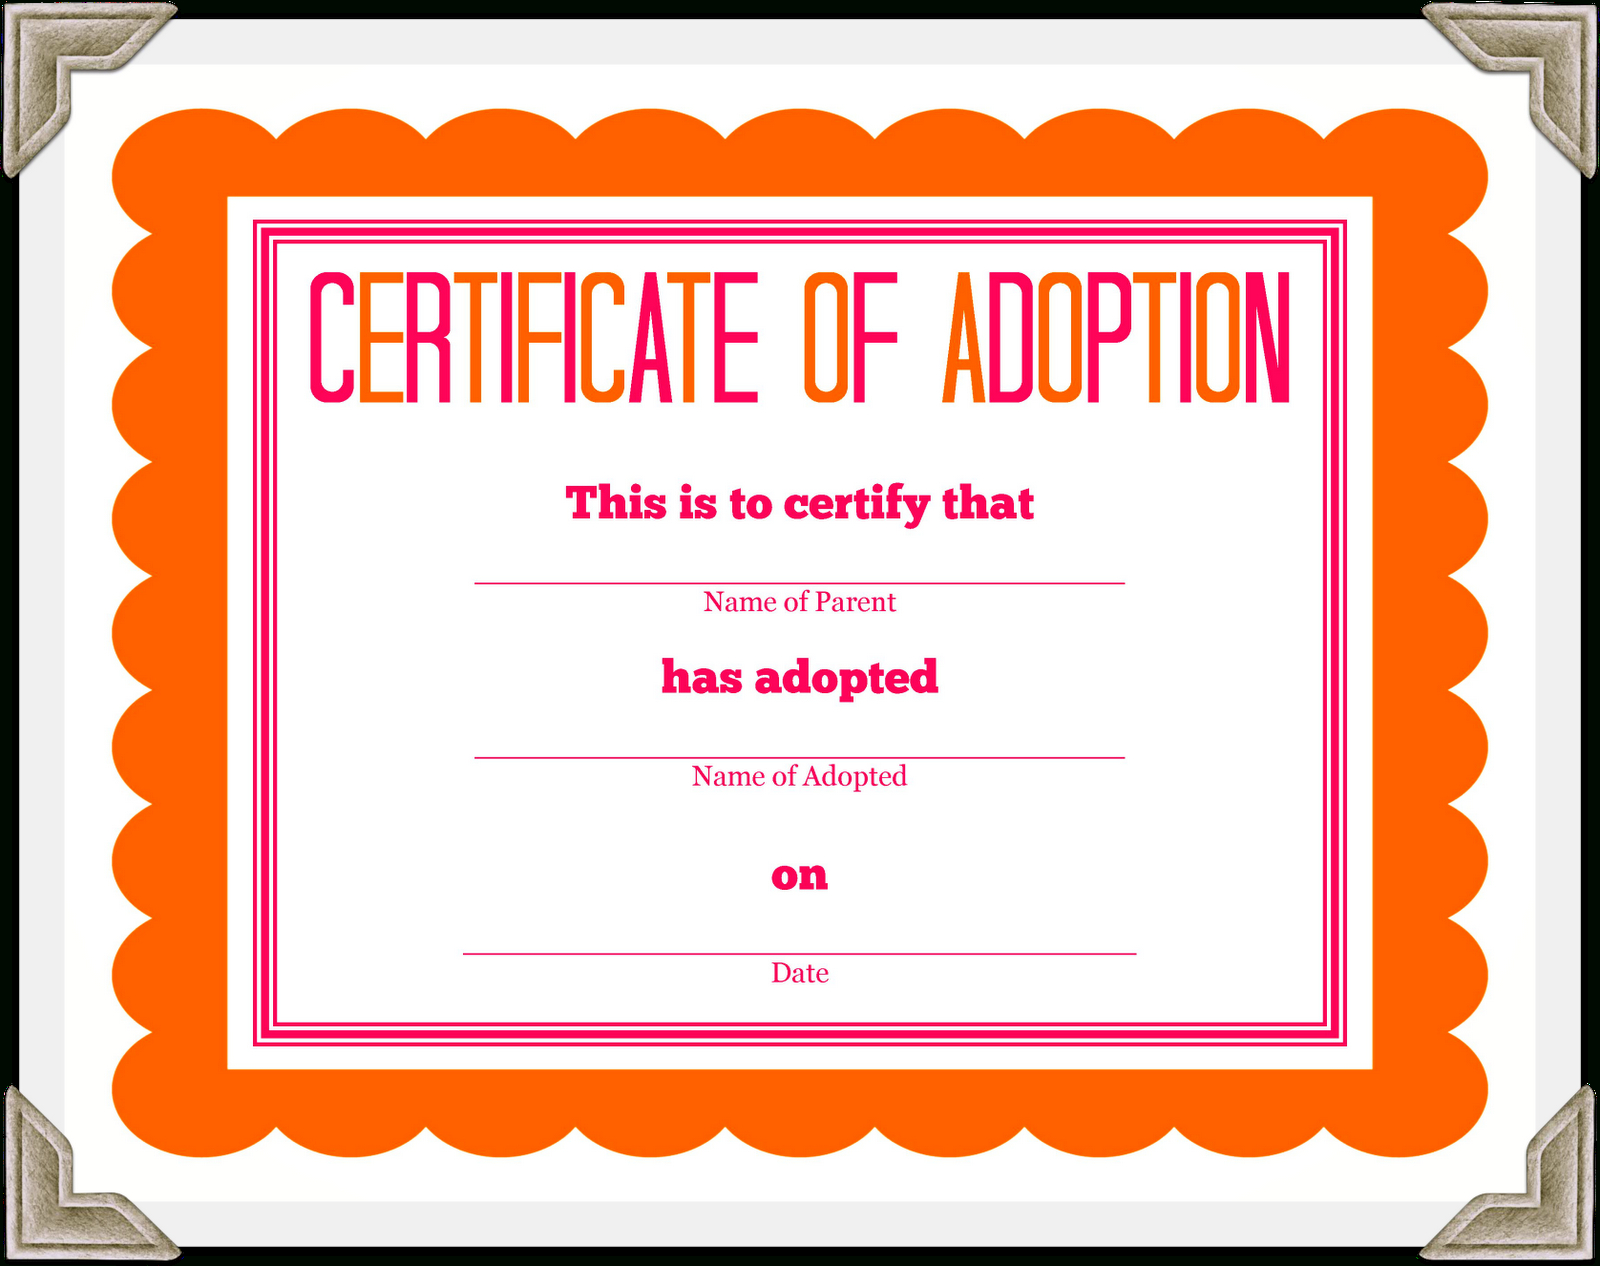 Stuffed Animal Adoption Certificate - Free Printable Adoption Certificate